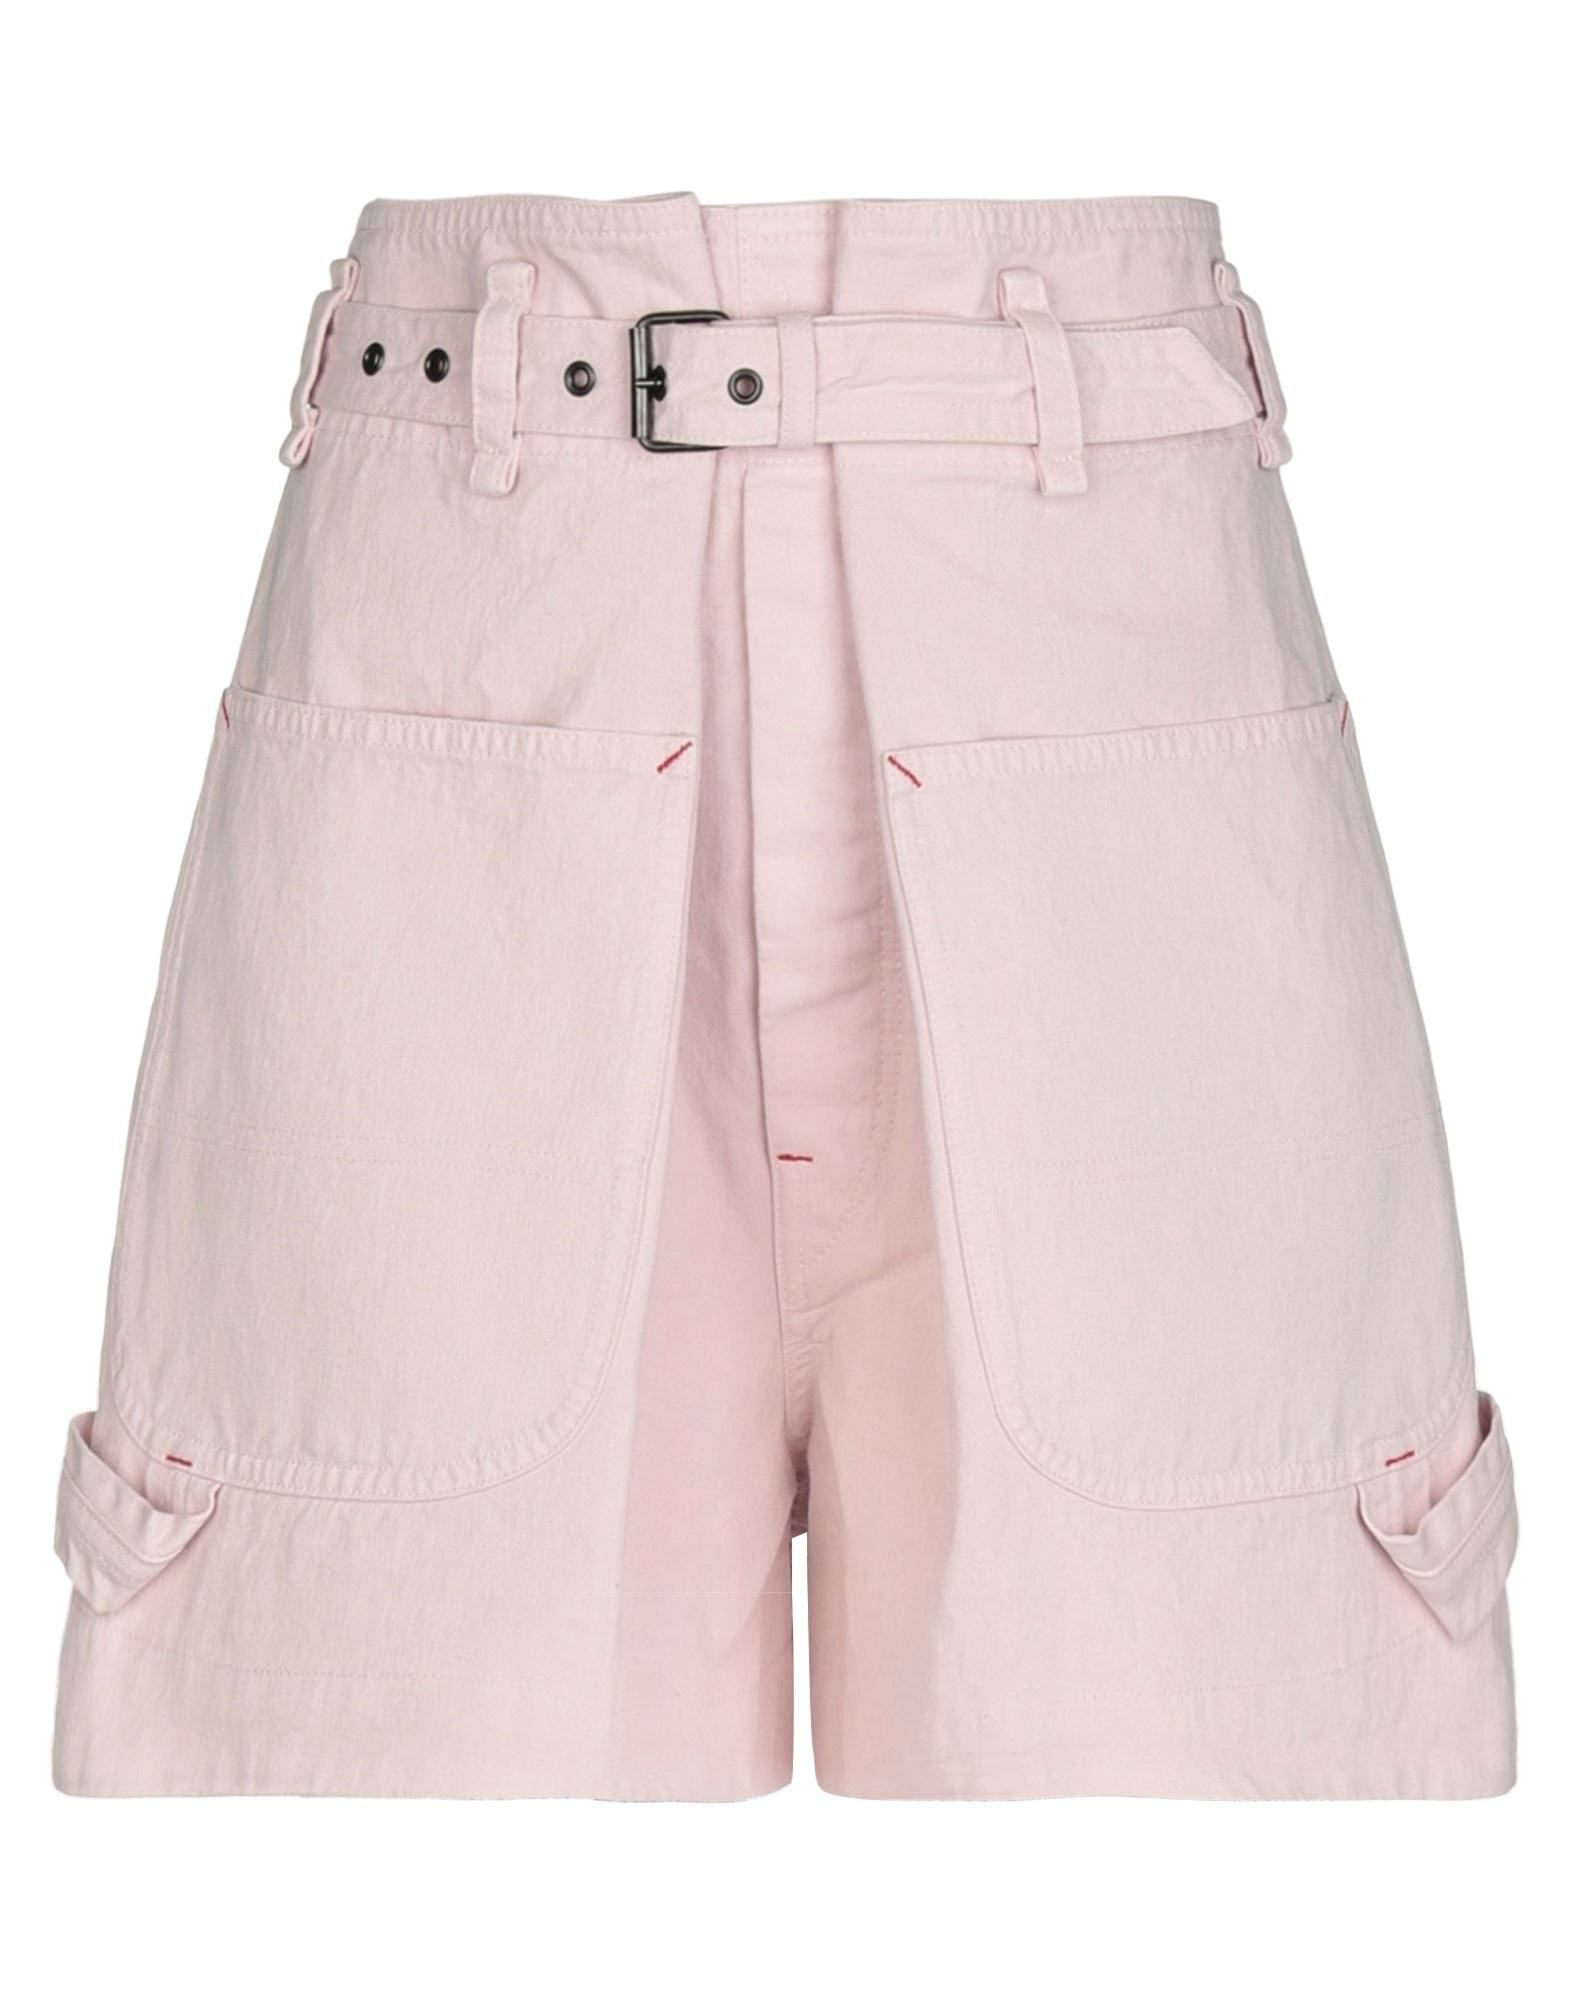 ISABEL MARANT Denim shorts. denim, belt, solid color, colored wash, high waisted, front closure, button closing, multipockets. 100% Cotton